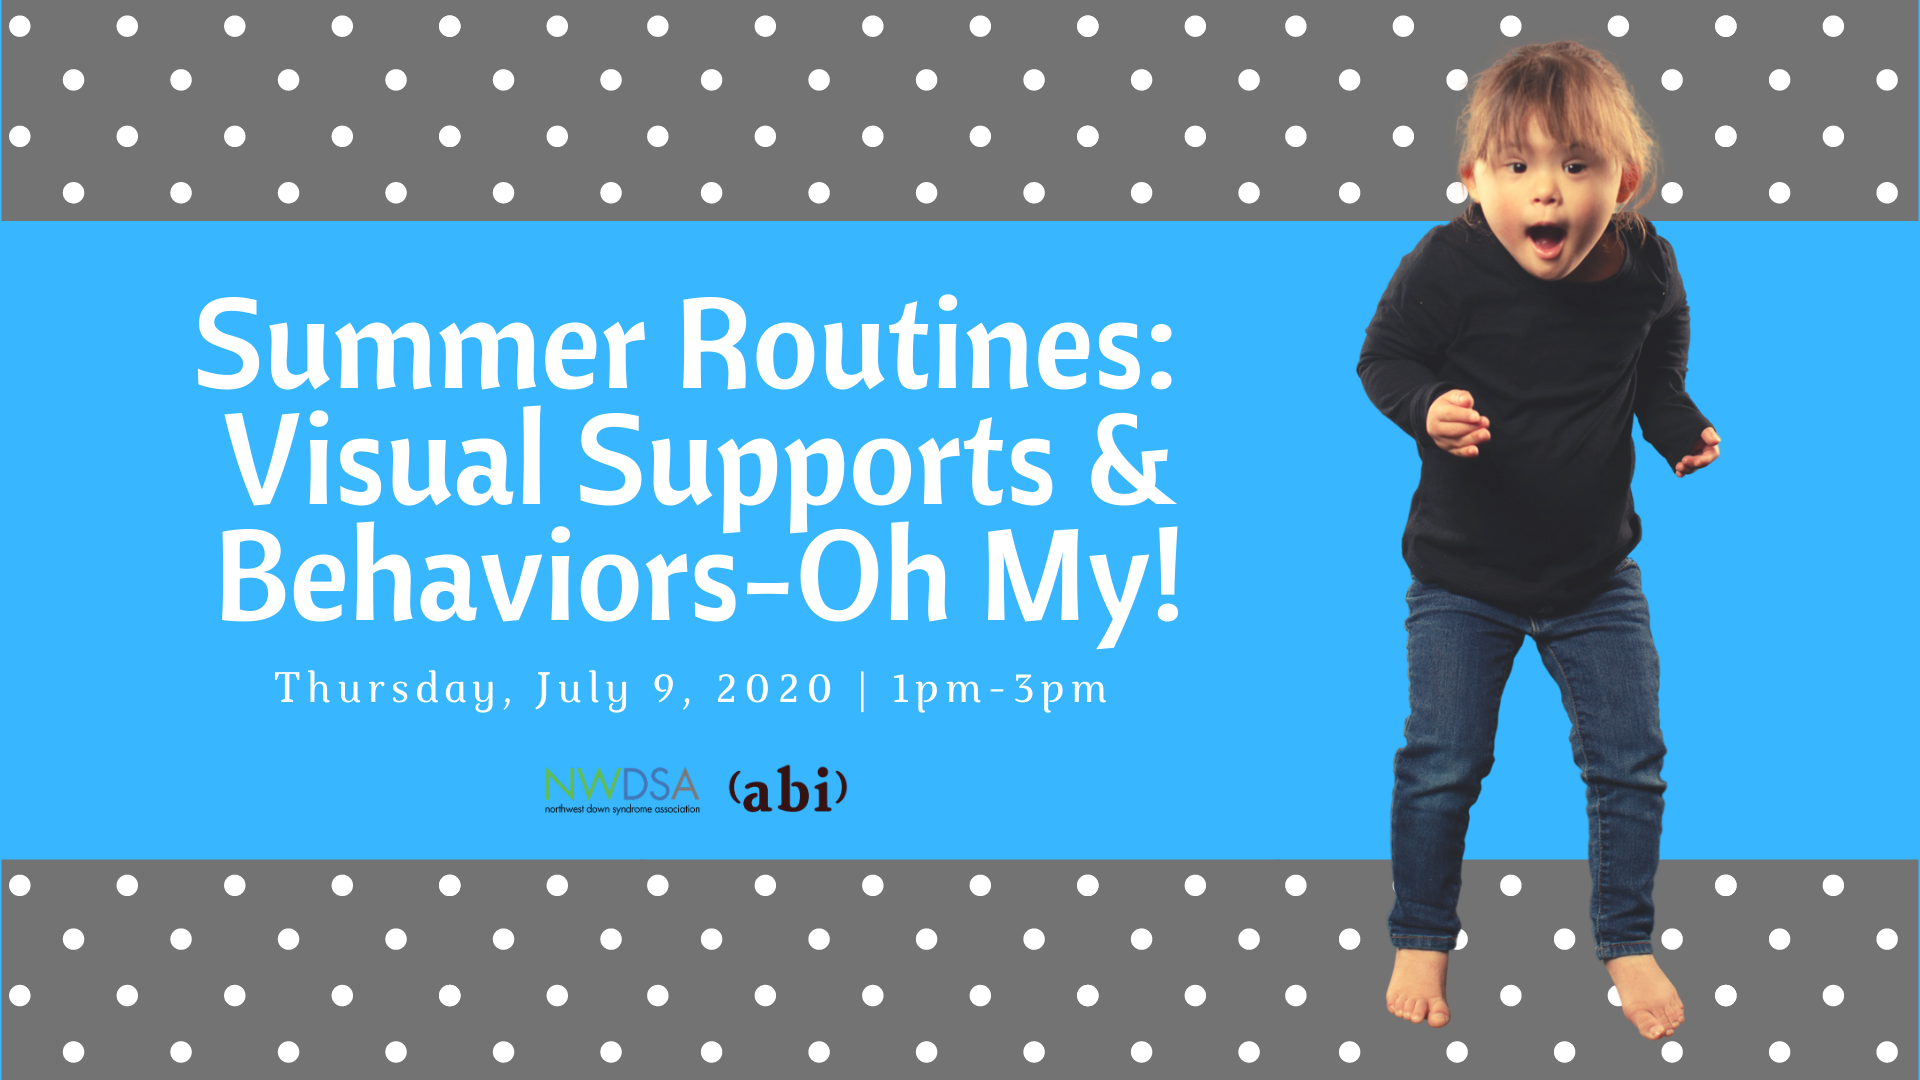 Summer Routines: Visual Supports & Behaviors-Oh My!